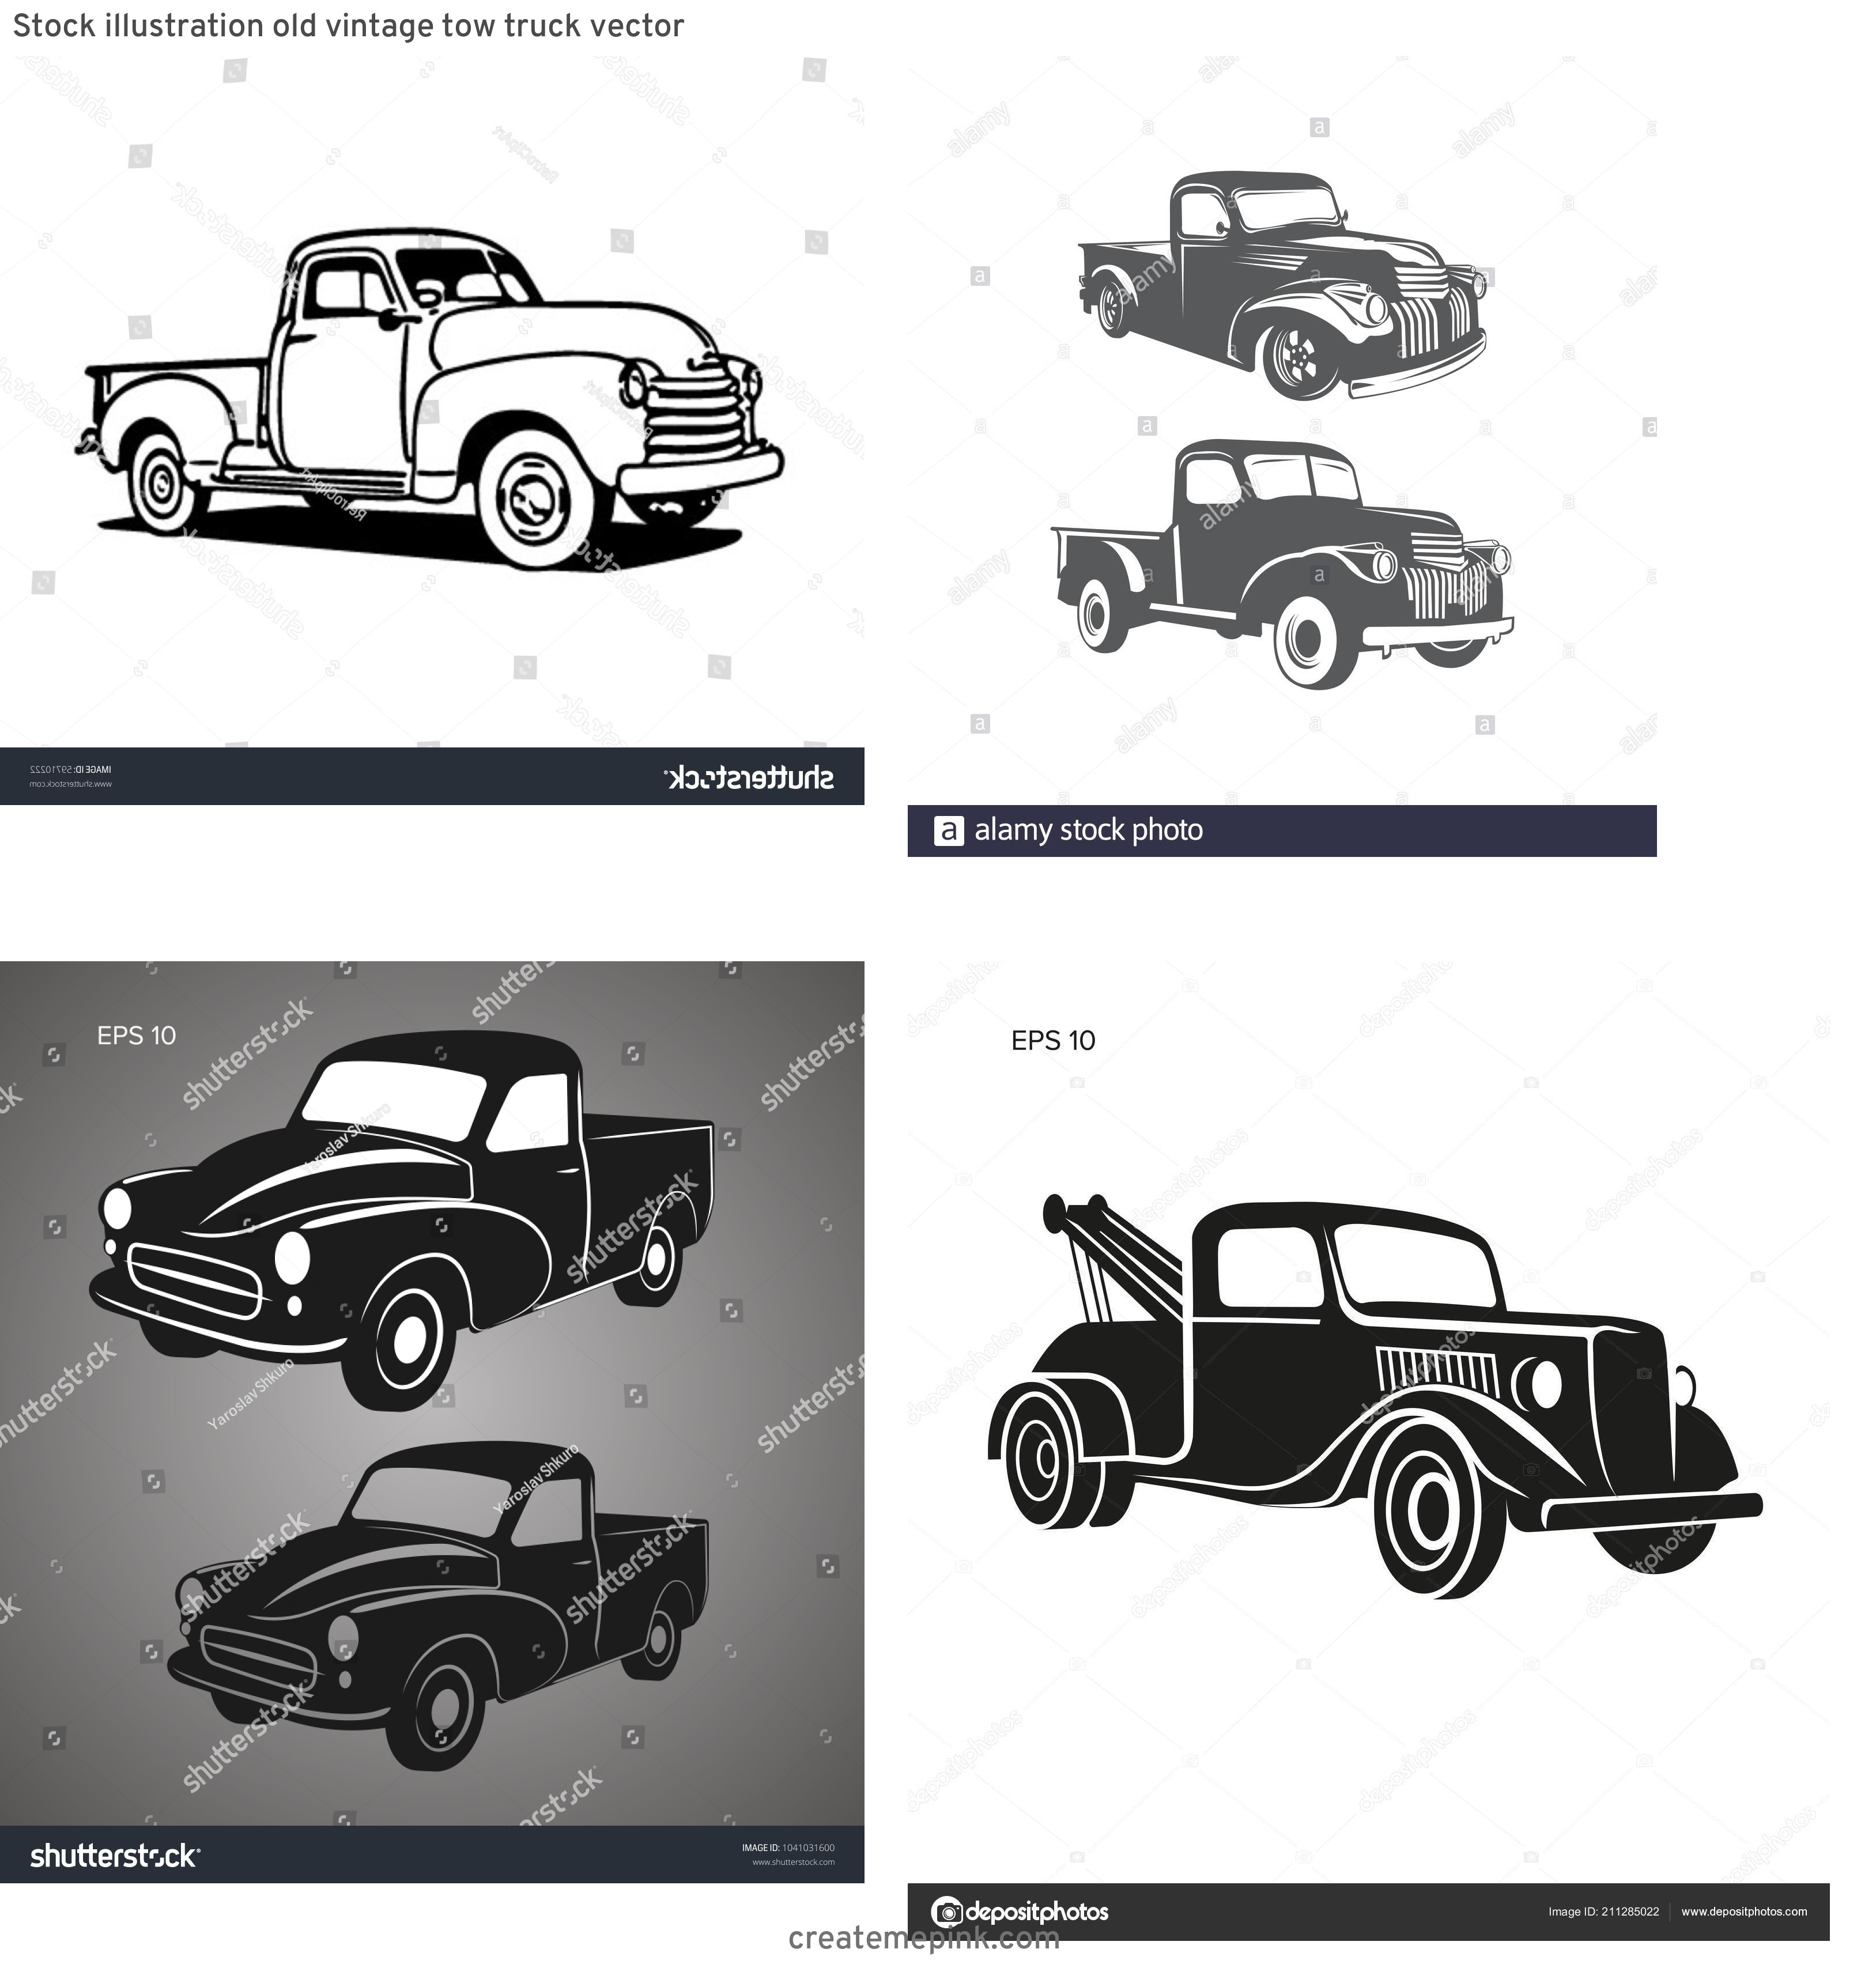 Old Truck Vector: Stock Illustration Old Vintage Tow Truck Vector